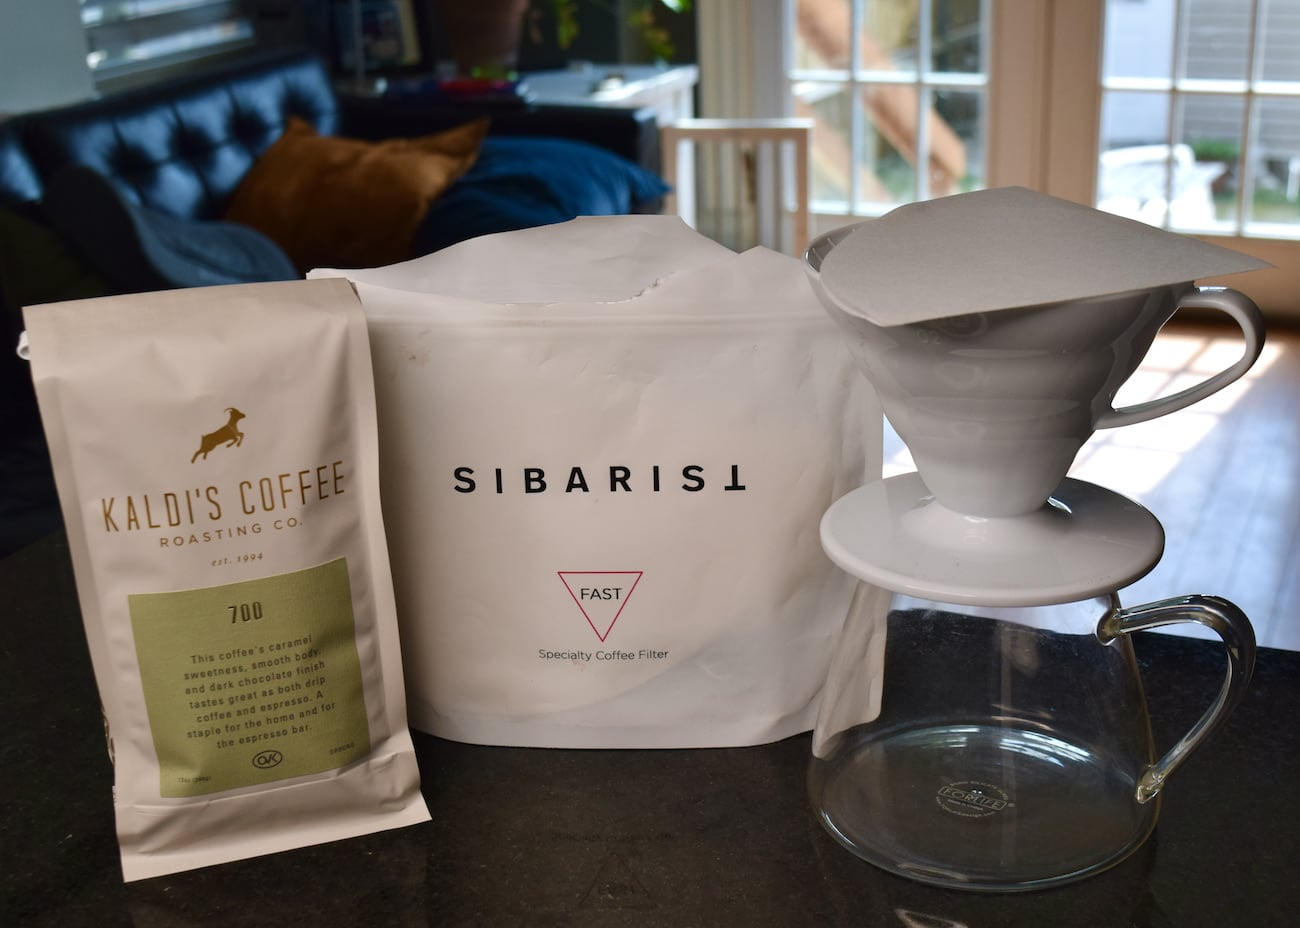 Sibarist Fast filters with a bag of 700 coffee blend and a v60